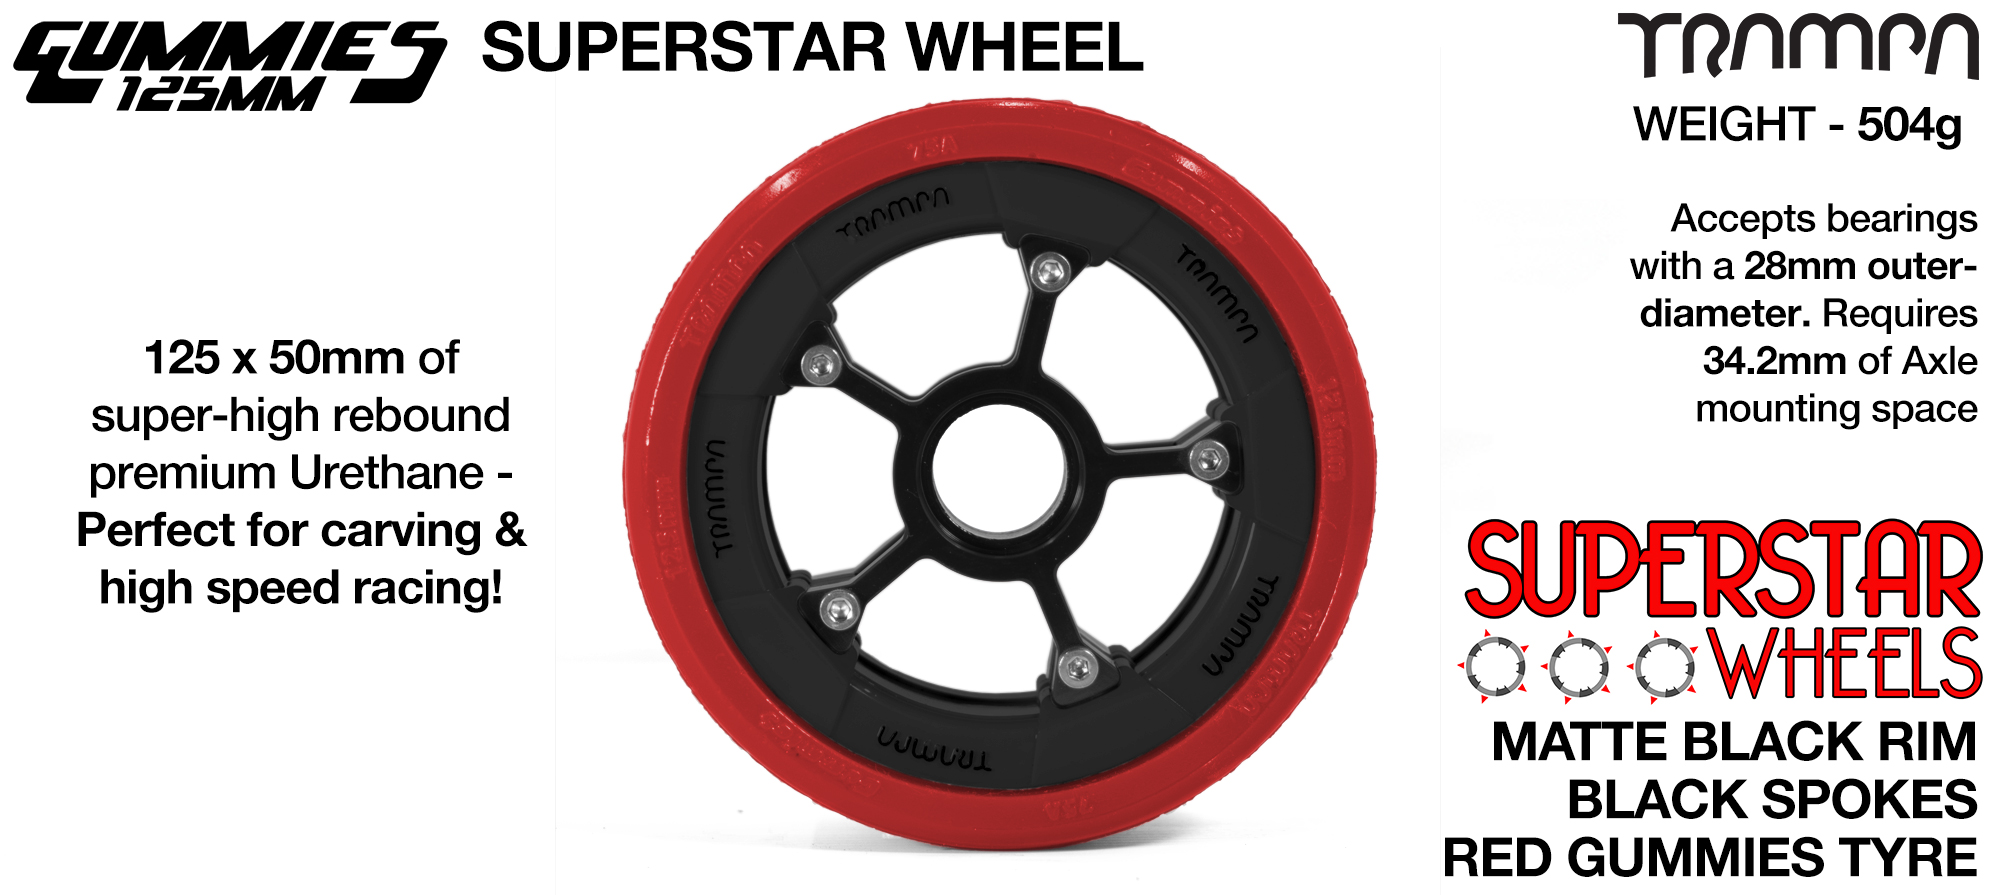 Superstar 125mm Longboard Wheels - Matt BLACK SUPERSTAR Rim with GUNMETAL Anodised Spokes & TTRAMPA BLACK Gummies 125mm Longboard Wheel Tyre